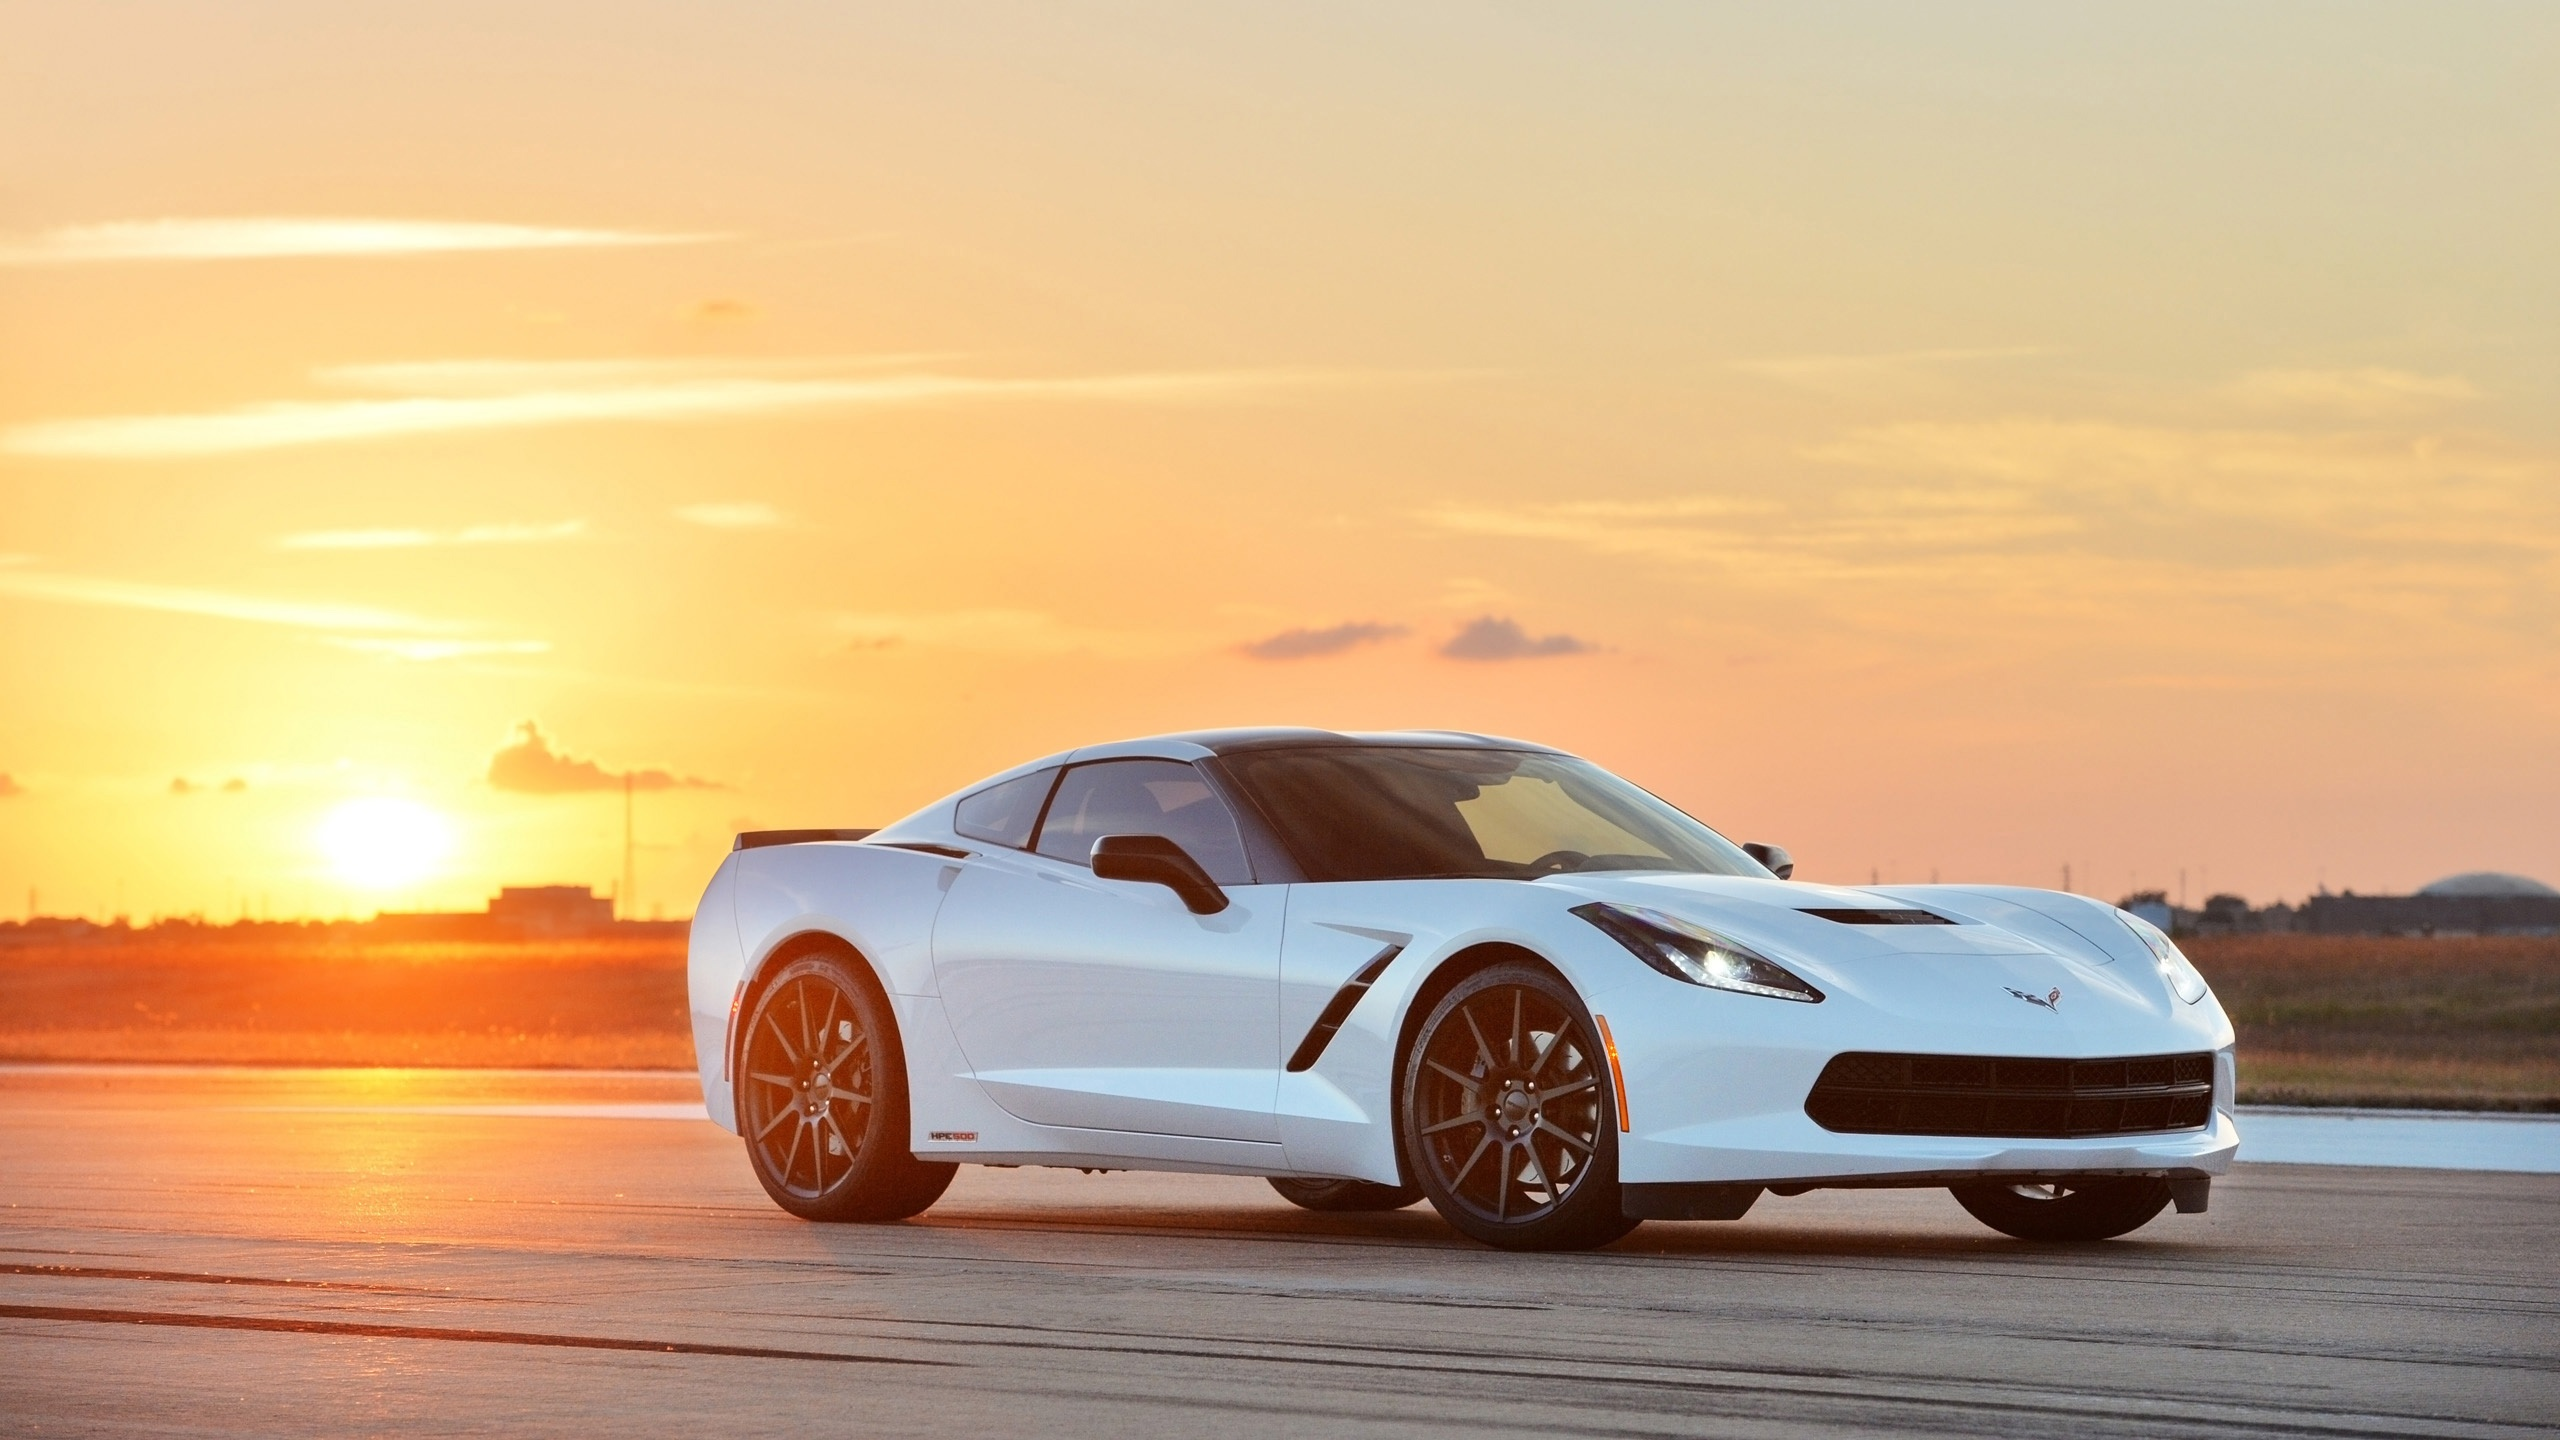 2018 Chevrolet Corvette Stingray Convertible EU Version photo - 2